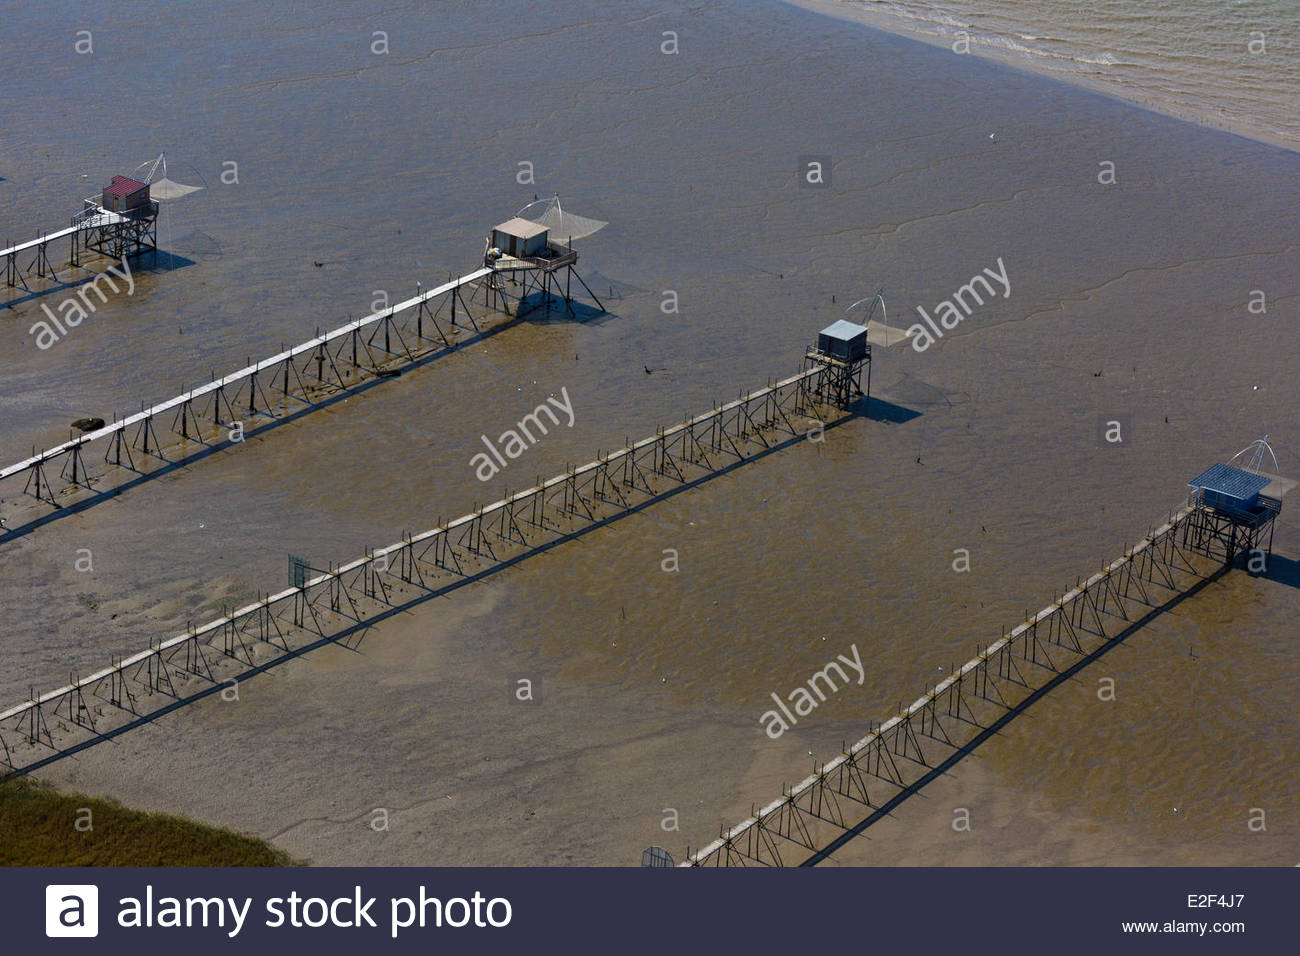 France, Loire Atlantique, Saint Brevin les Pins, Fishery, Squares on the estuary of the Loire (aerial view) Stock Photo